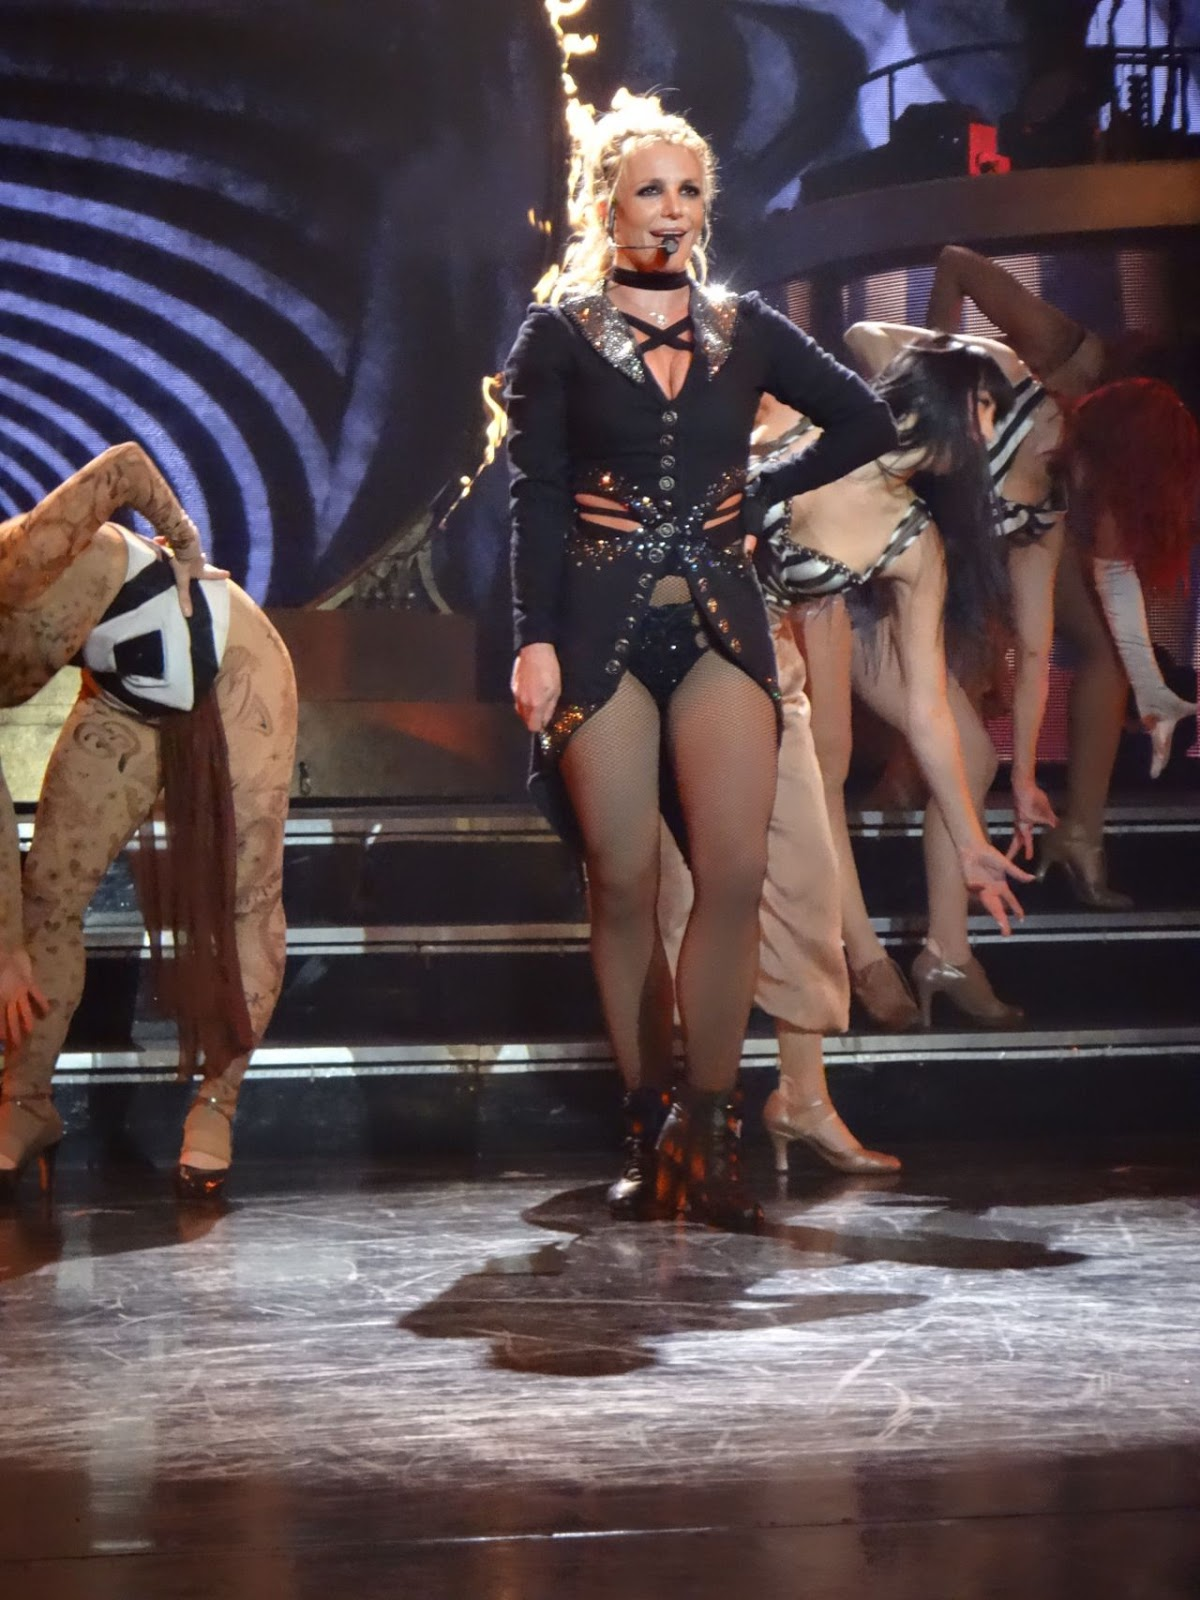 Britney Spears Performs at the AXIS at Planet Hollywood